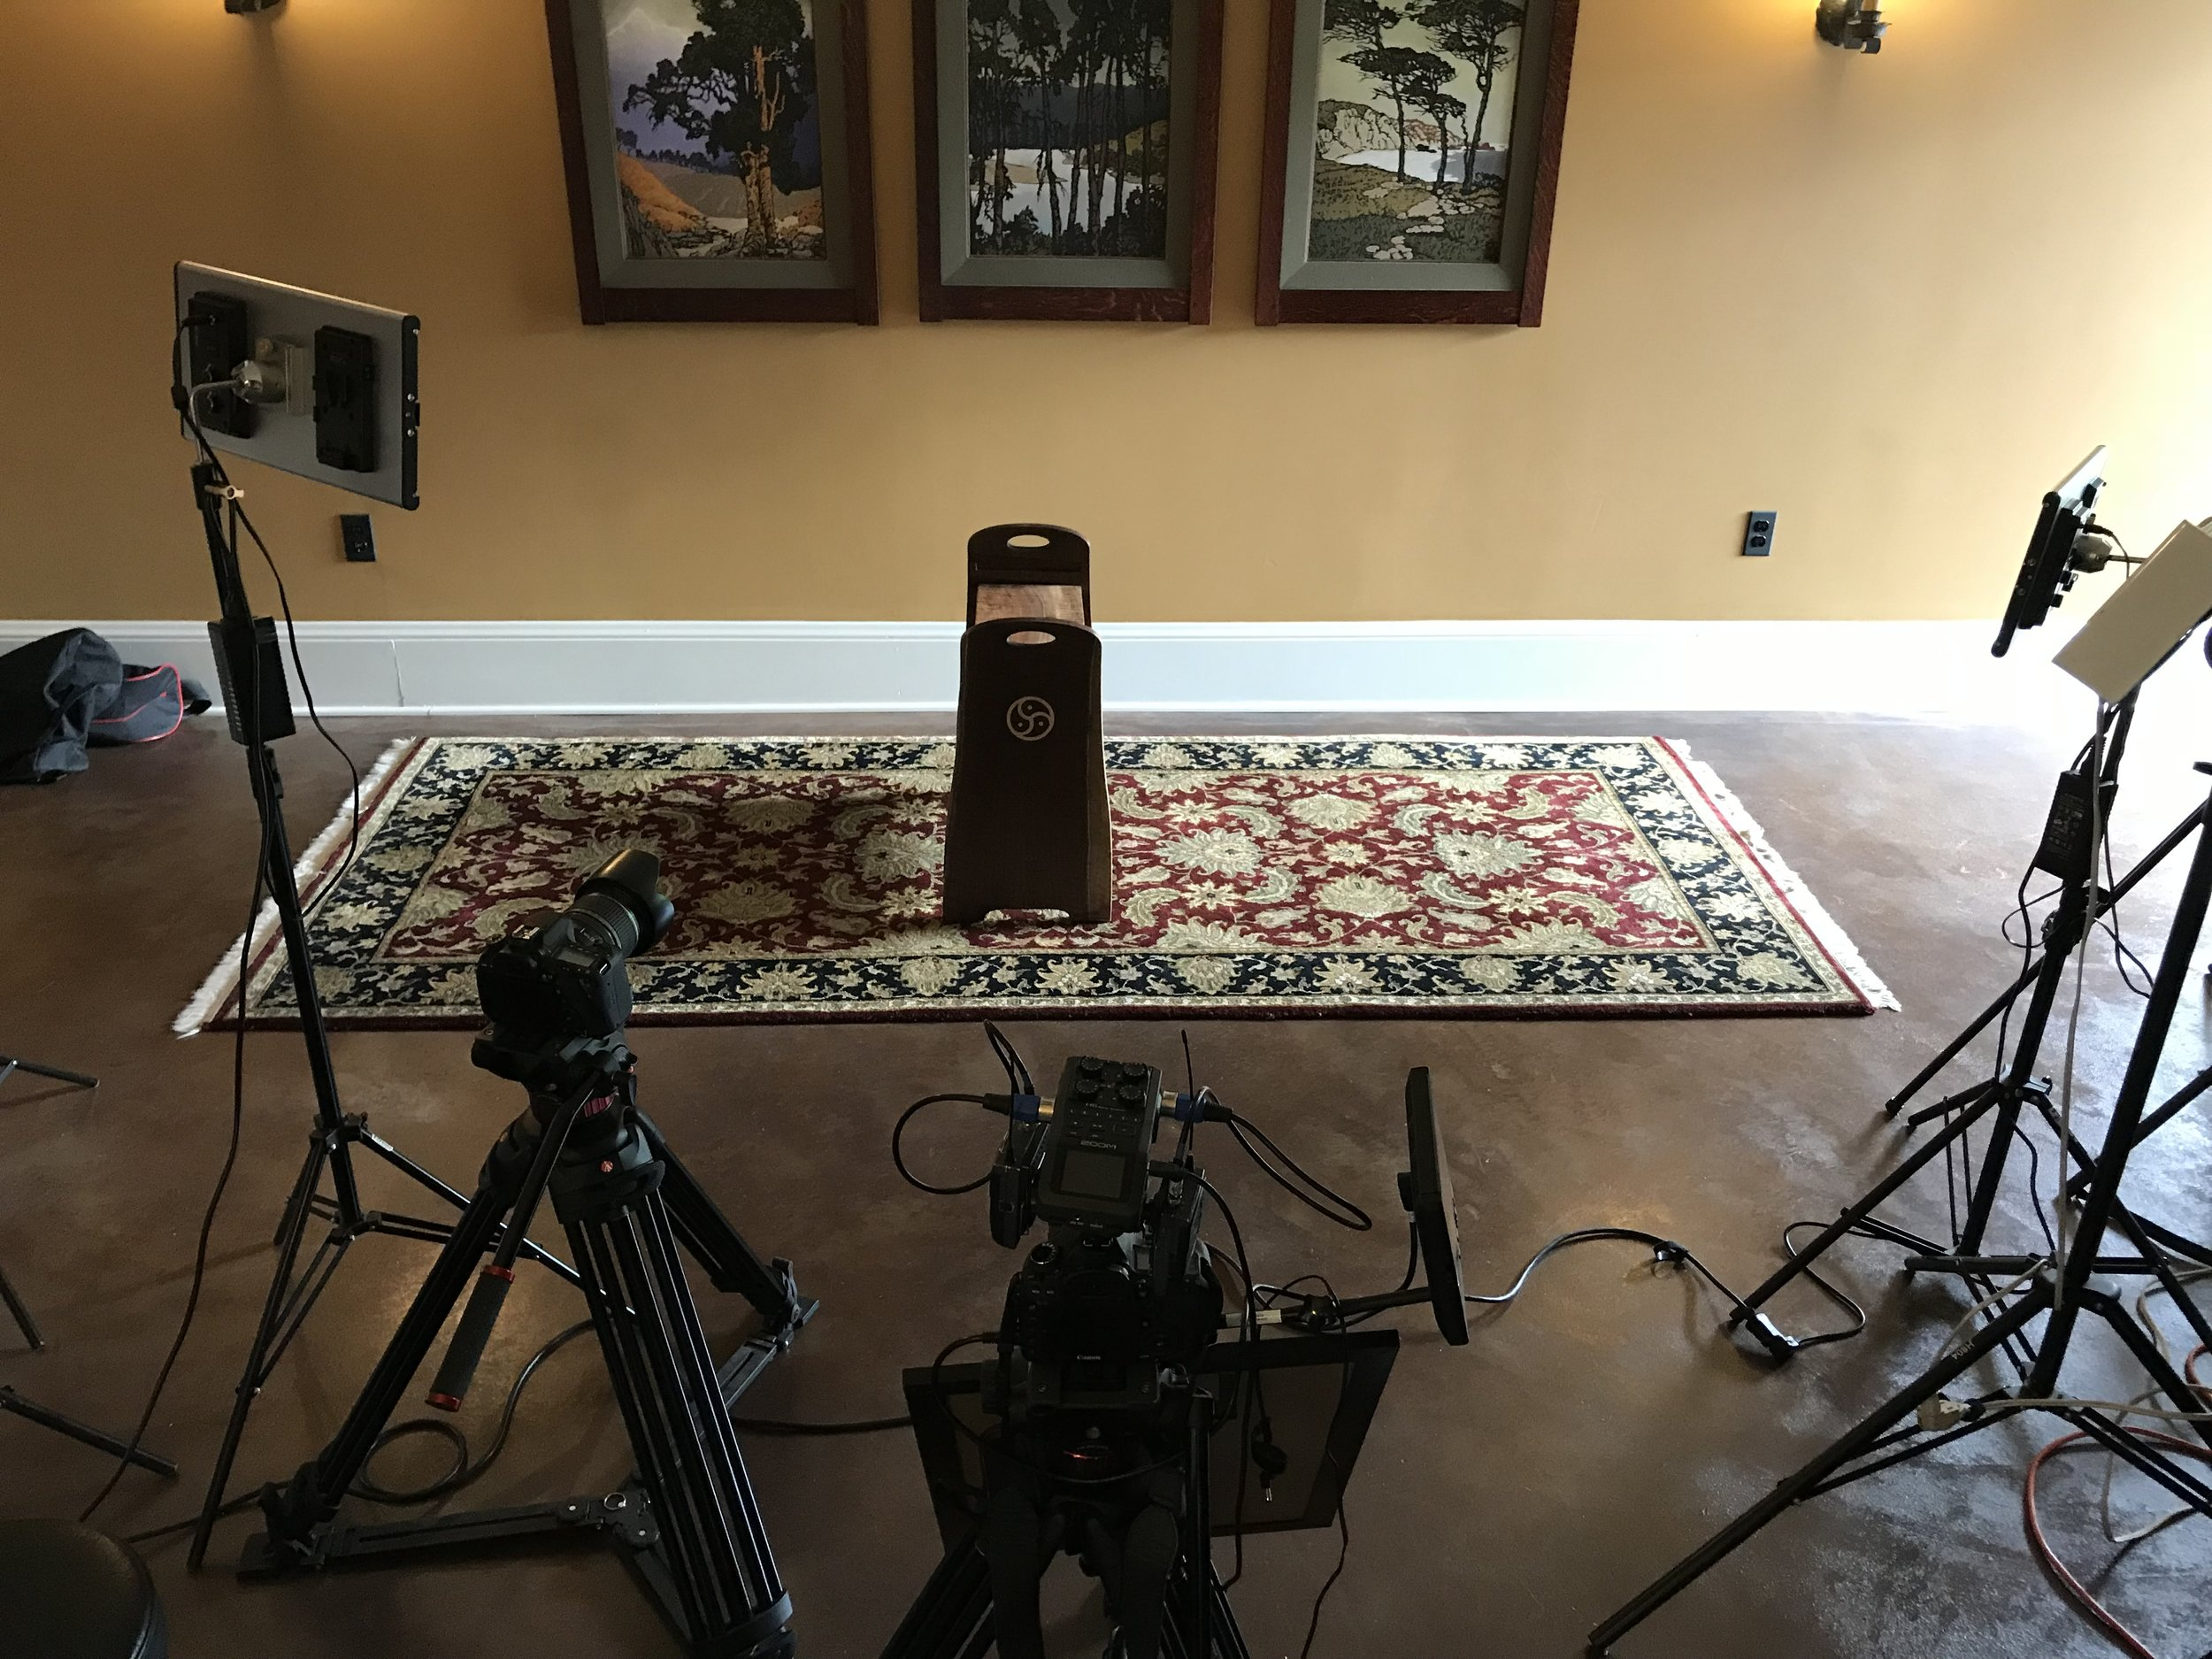 VIDEO SHOOT SET-UP. We shoot all our videos in Alex's studio which is unrecognizable once we get all the lights, cameras and audio equipment in there.